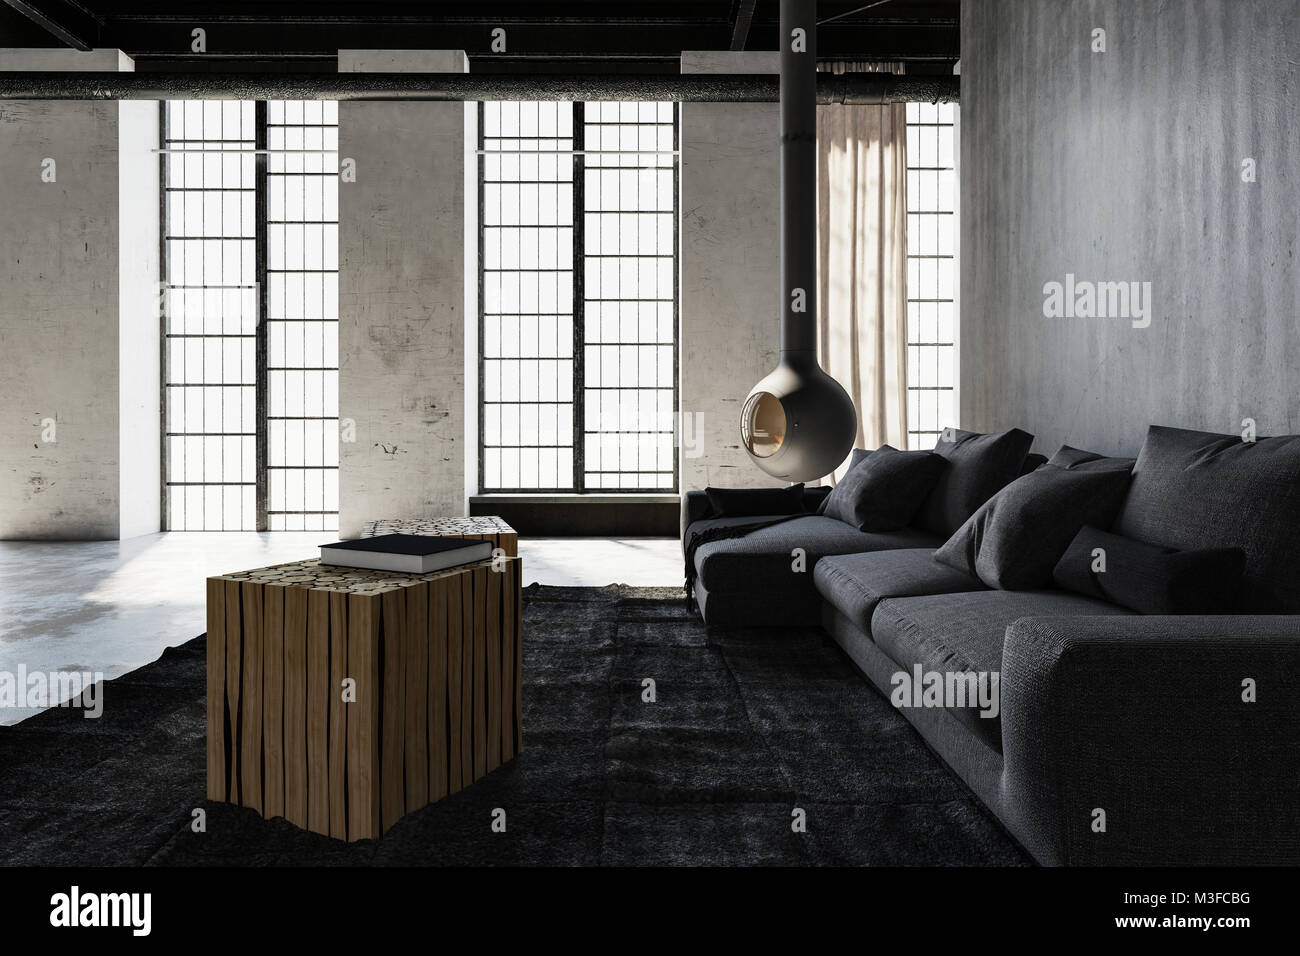 Modern Industrial Loft Conversion Living Room With Monochromatic Grey Decor And Grunge Cement Walls Lit By Daylight From Large Windows 3d Rendering